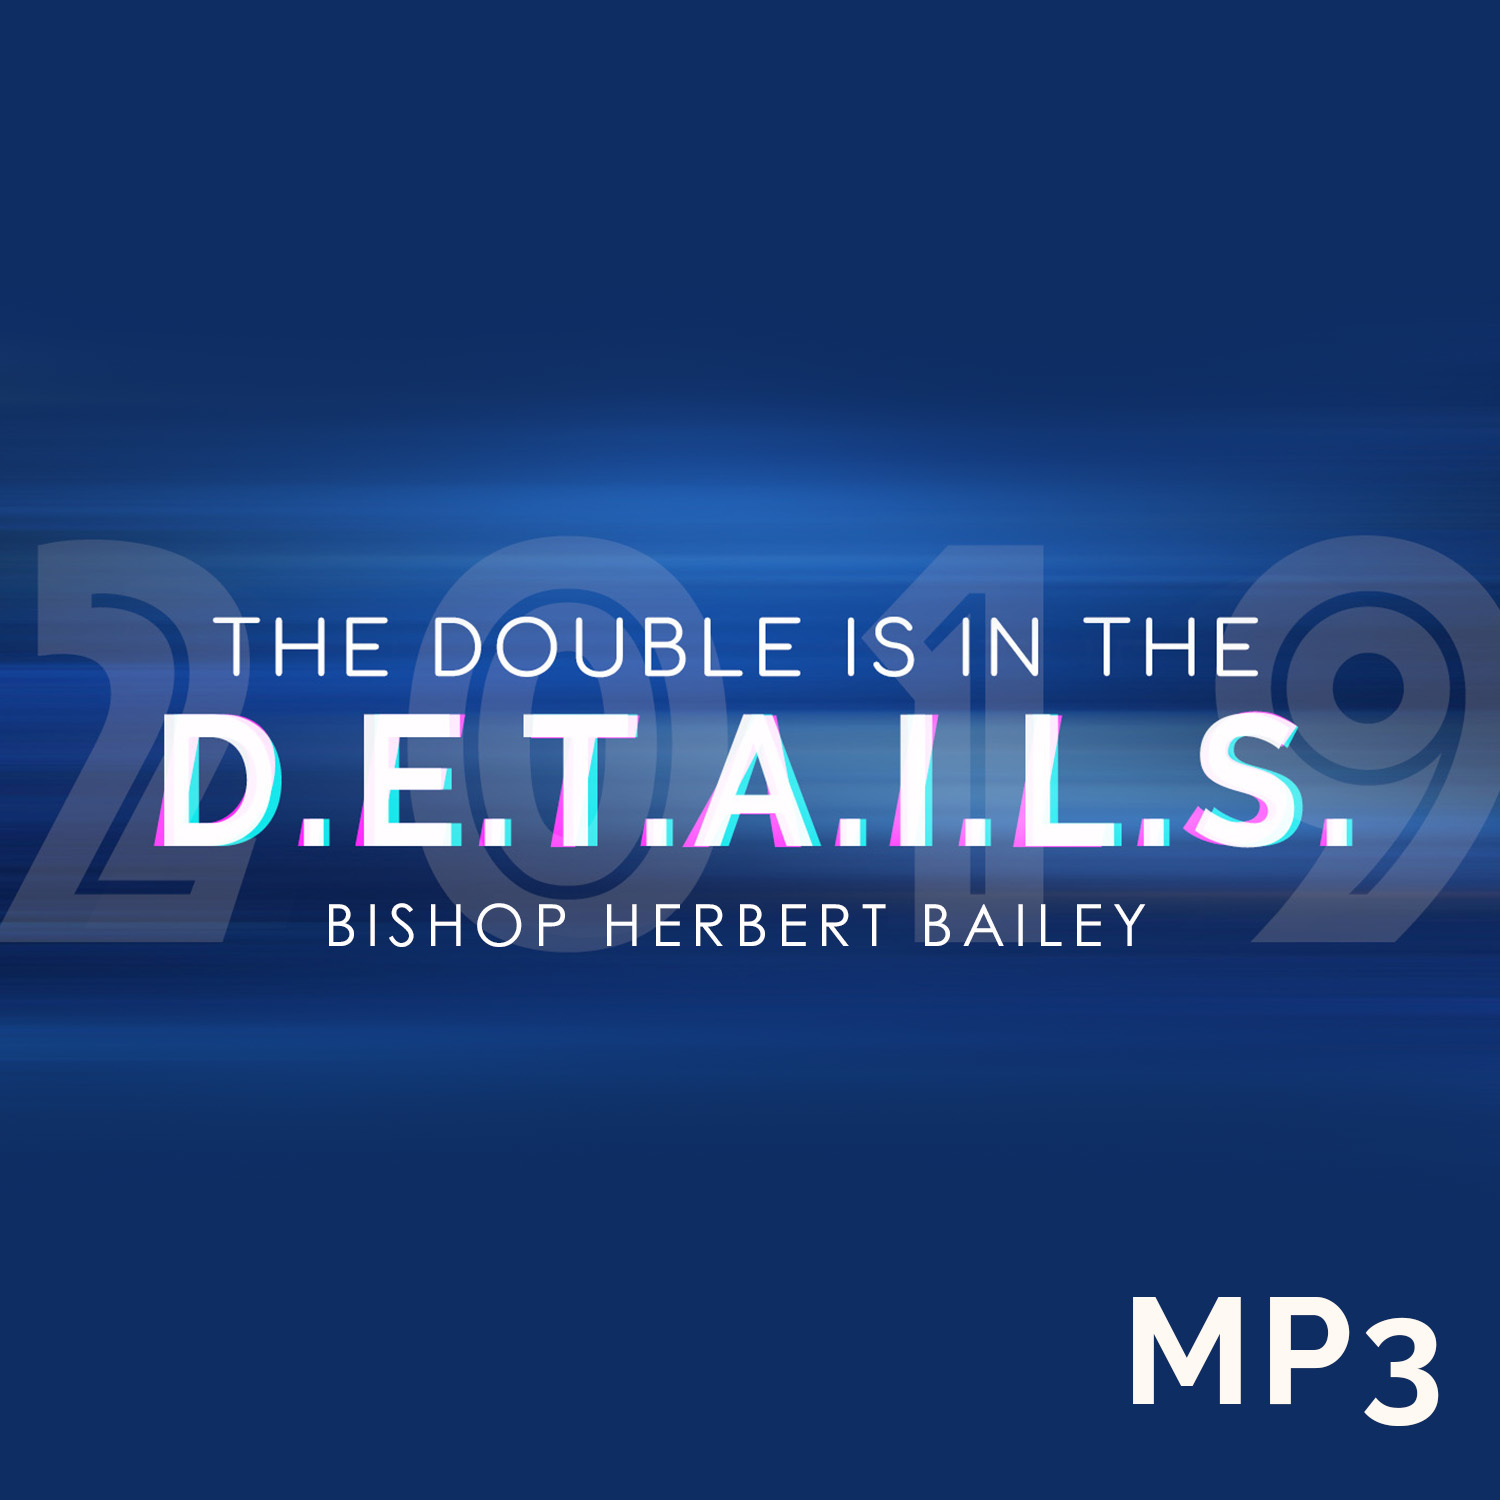 The Double is in the Details 00023